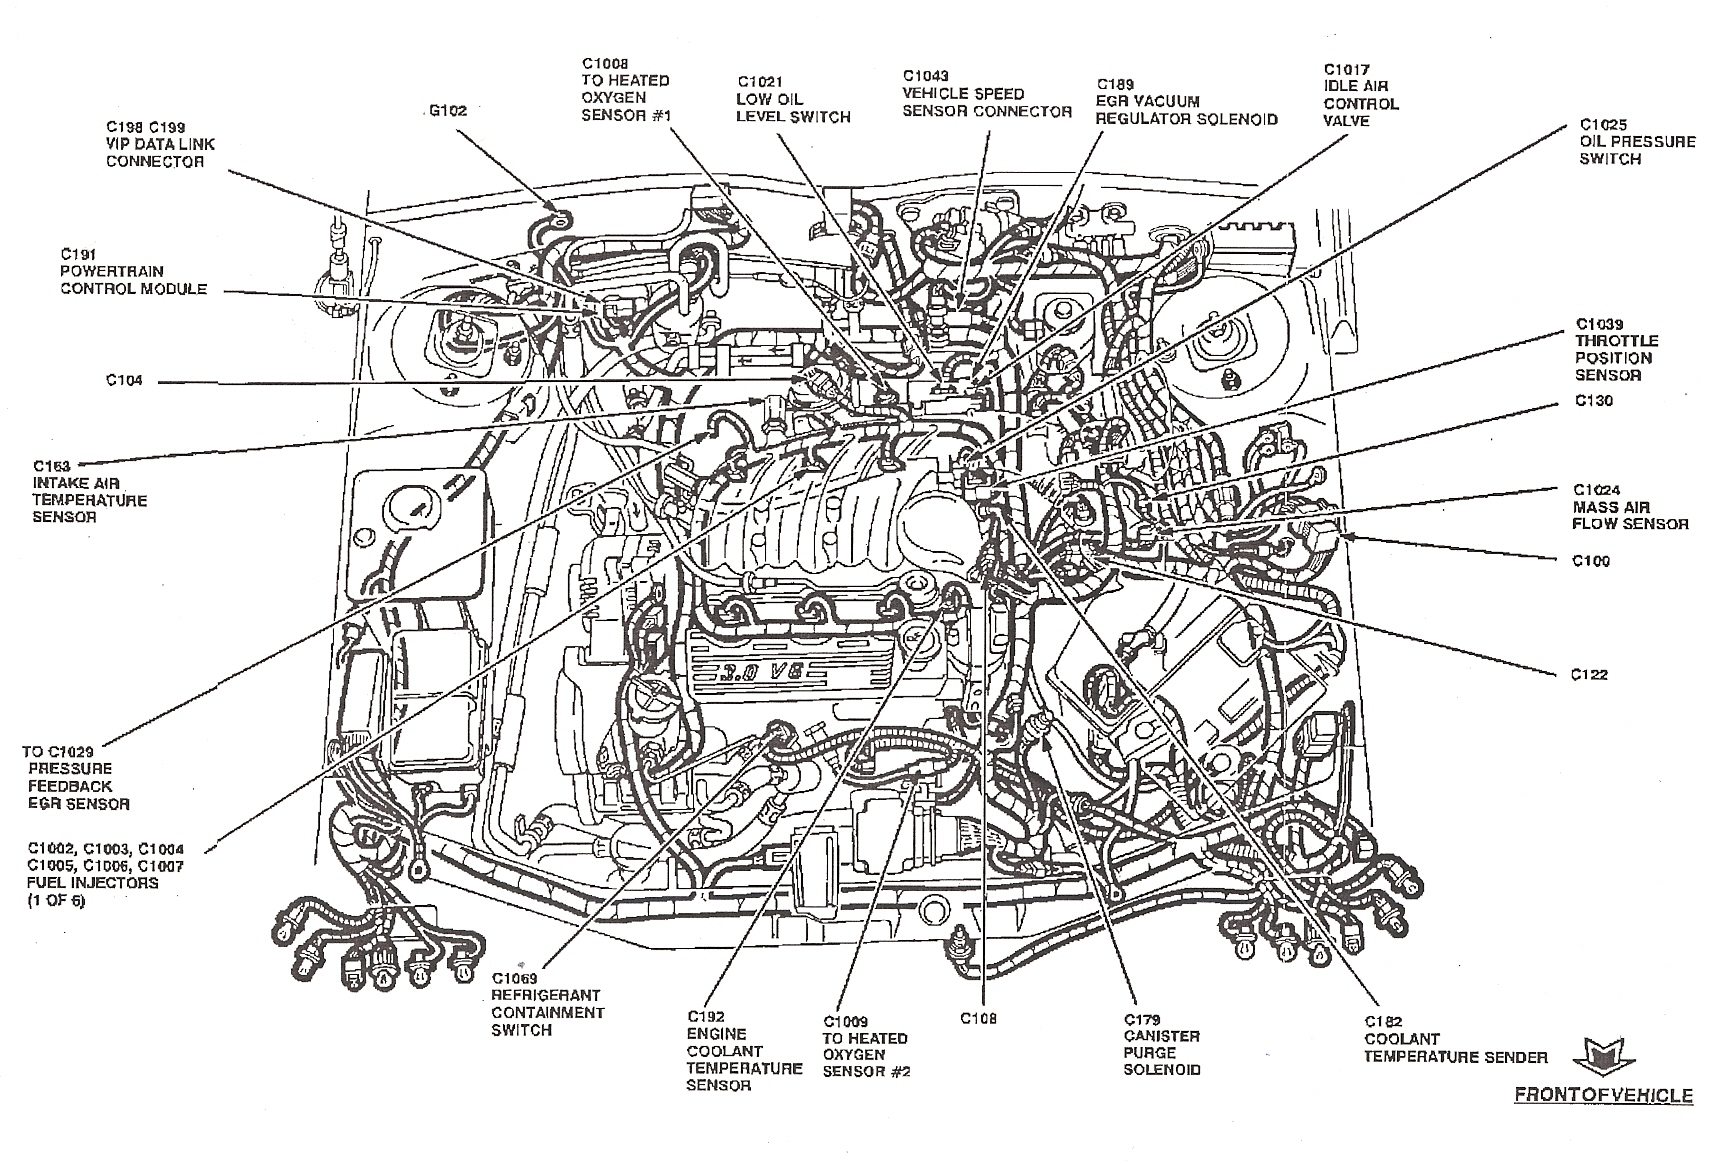 94 ford taurus page 2 fordforumsonline com 2001 ford taurus fuse box diagram under hood at crackthecode.co